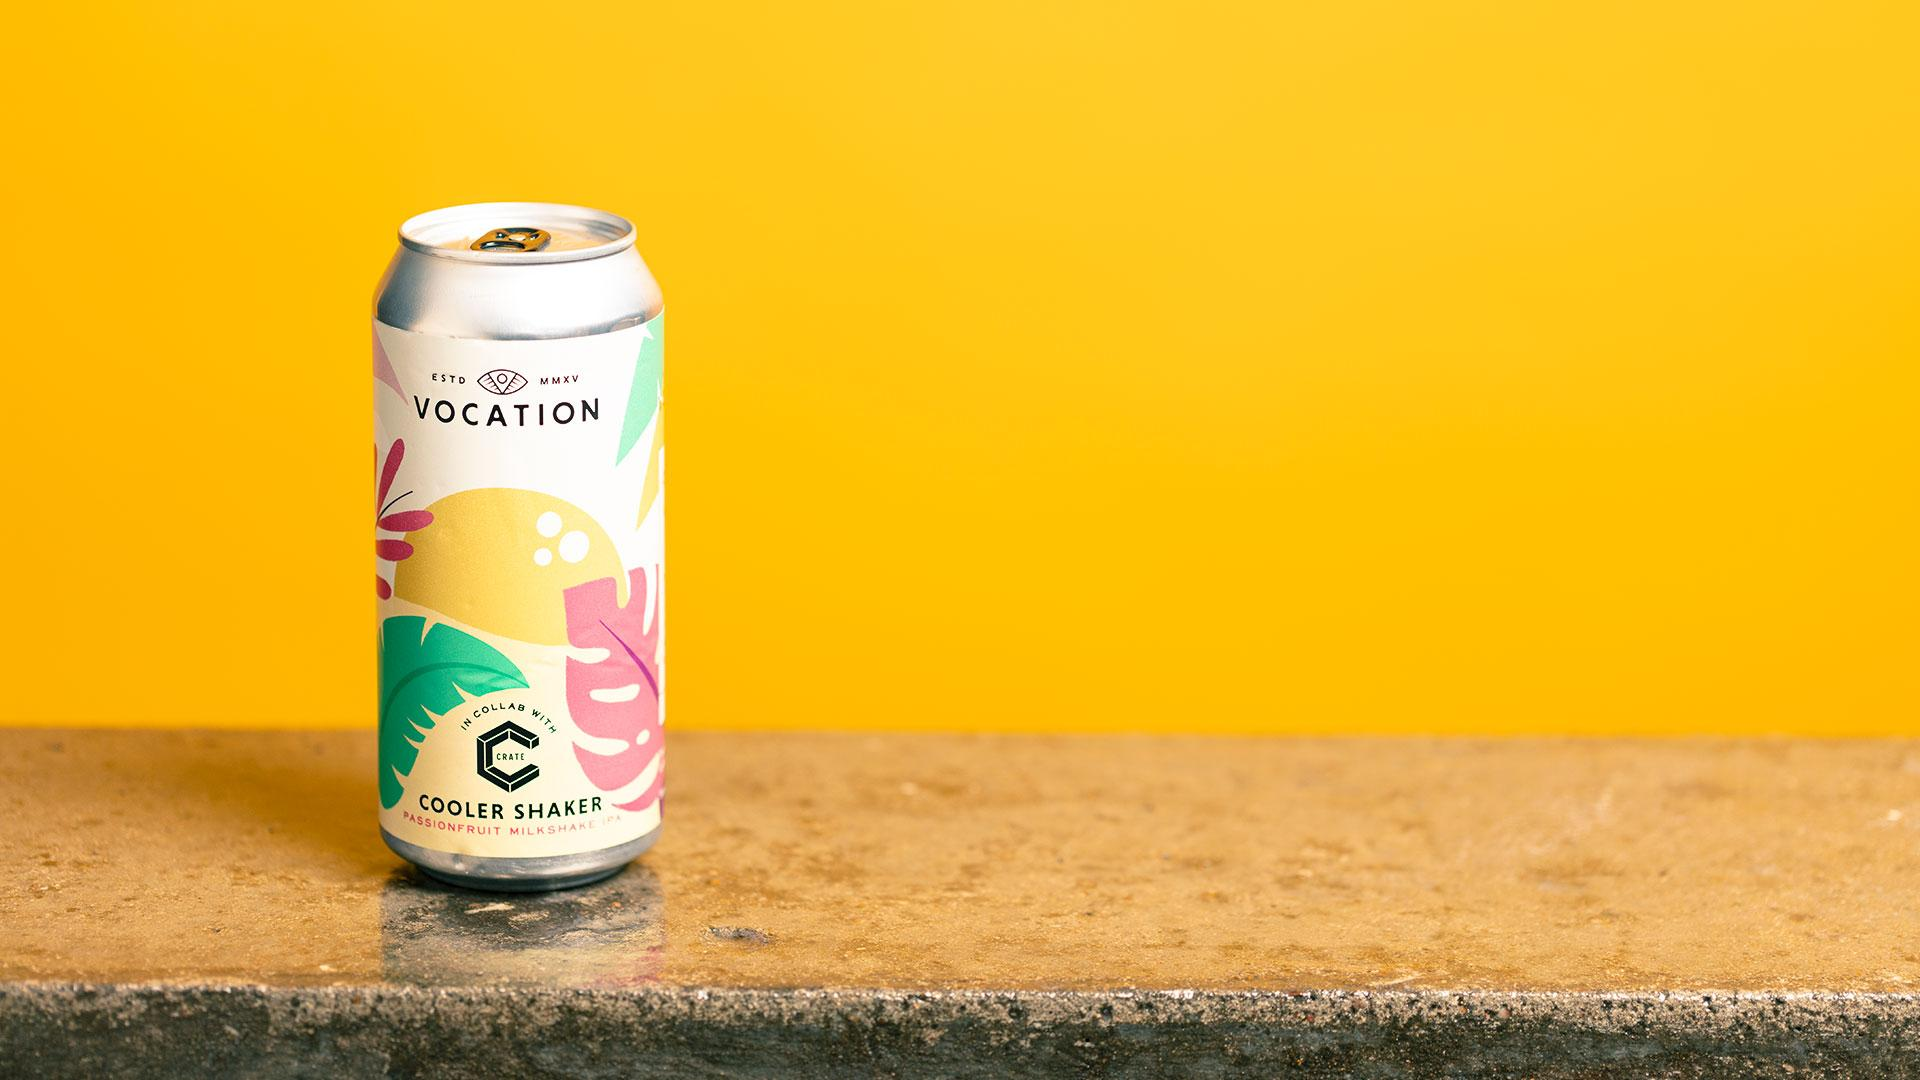 Tesco craft beer: Vocation x Crate Cooler Shaker Passionfruit Milkshake IPA